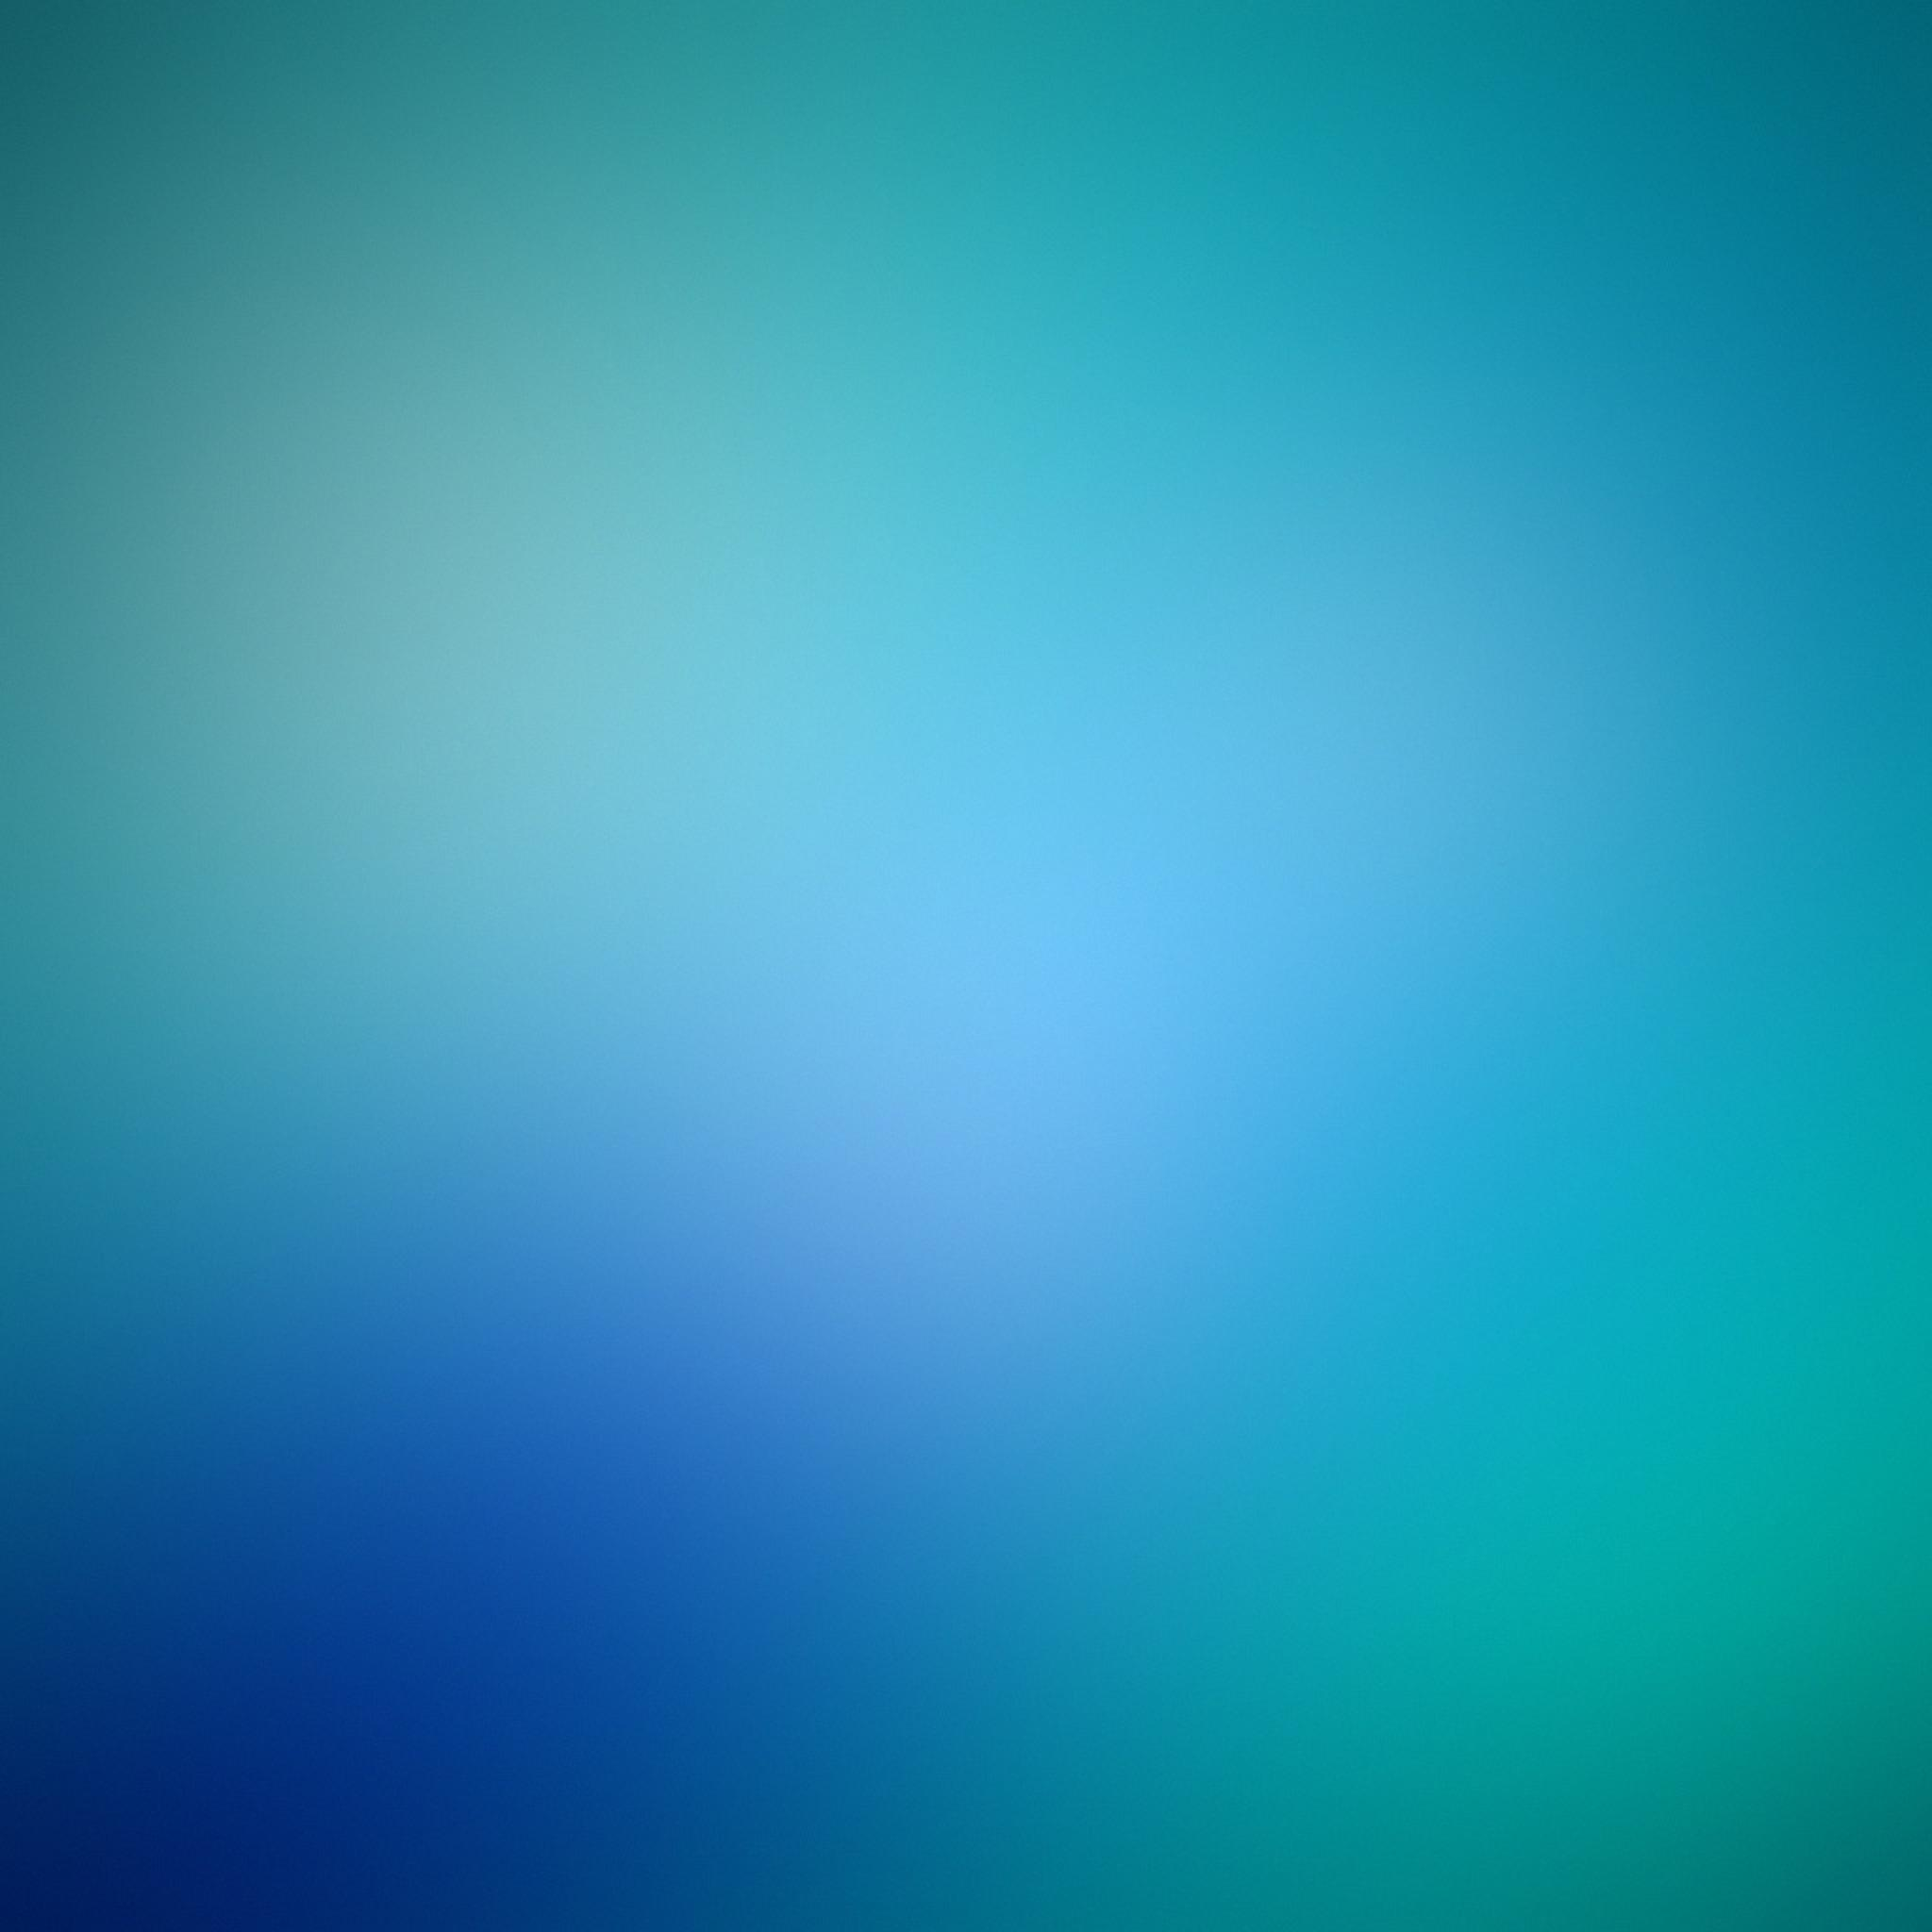 Solid Bright Blue Background Bright solid c 2048x2048